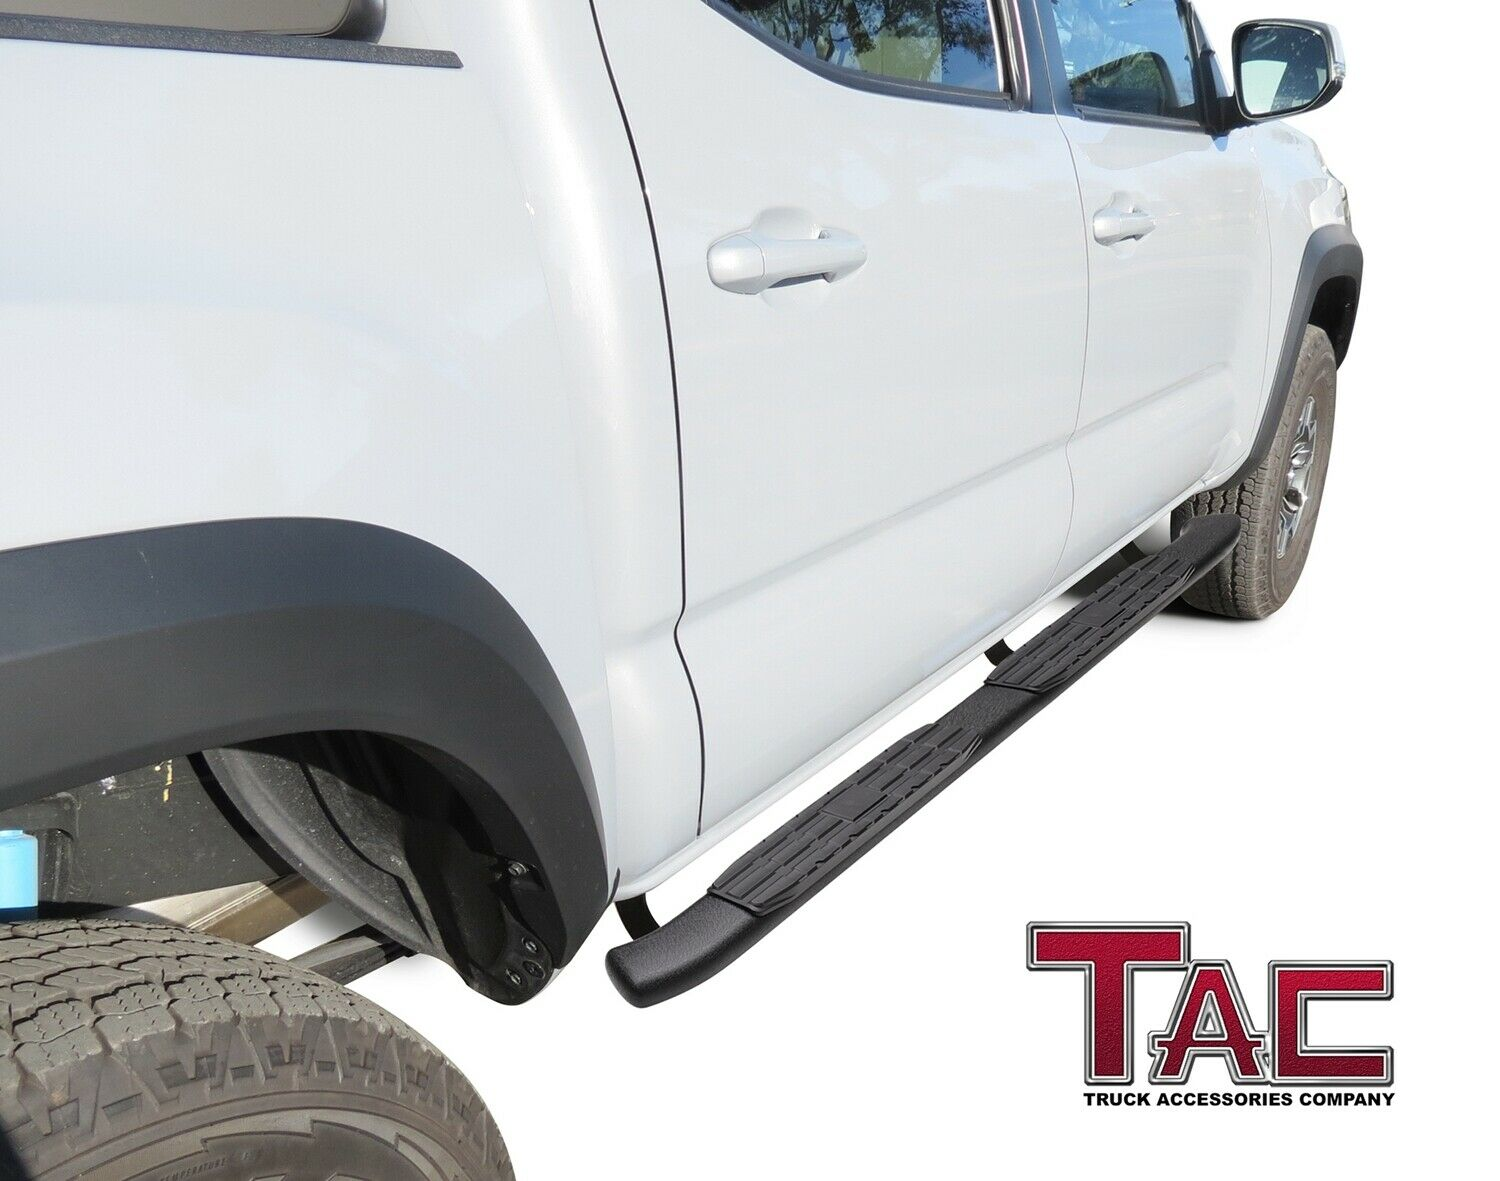 2 Pieces Running Boards TAC Side Steps Fit 2005-2019 Toyota Tacoma Double Cab Truck Pickup 5 Oval Bend Black Side Steps Nerf Bars Step Rails Running Boards Off Road Exterior Accessories